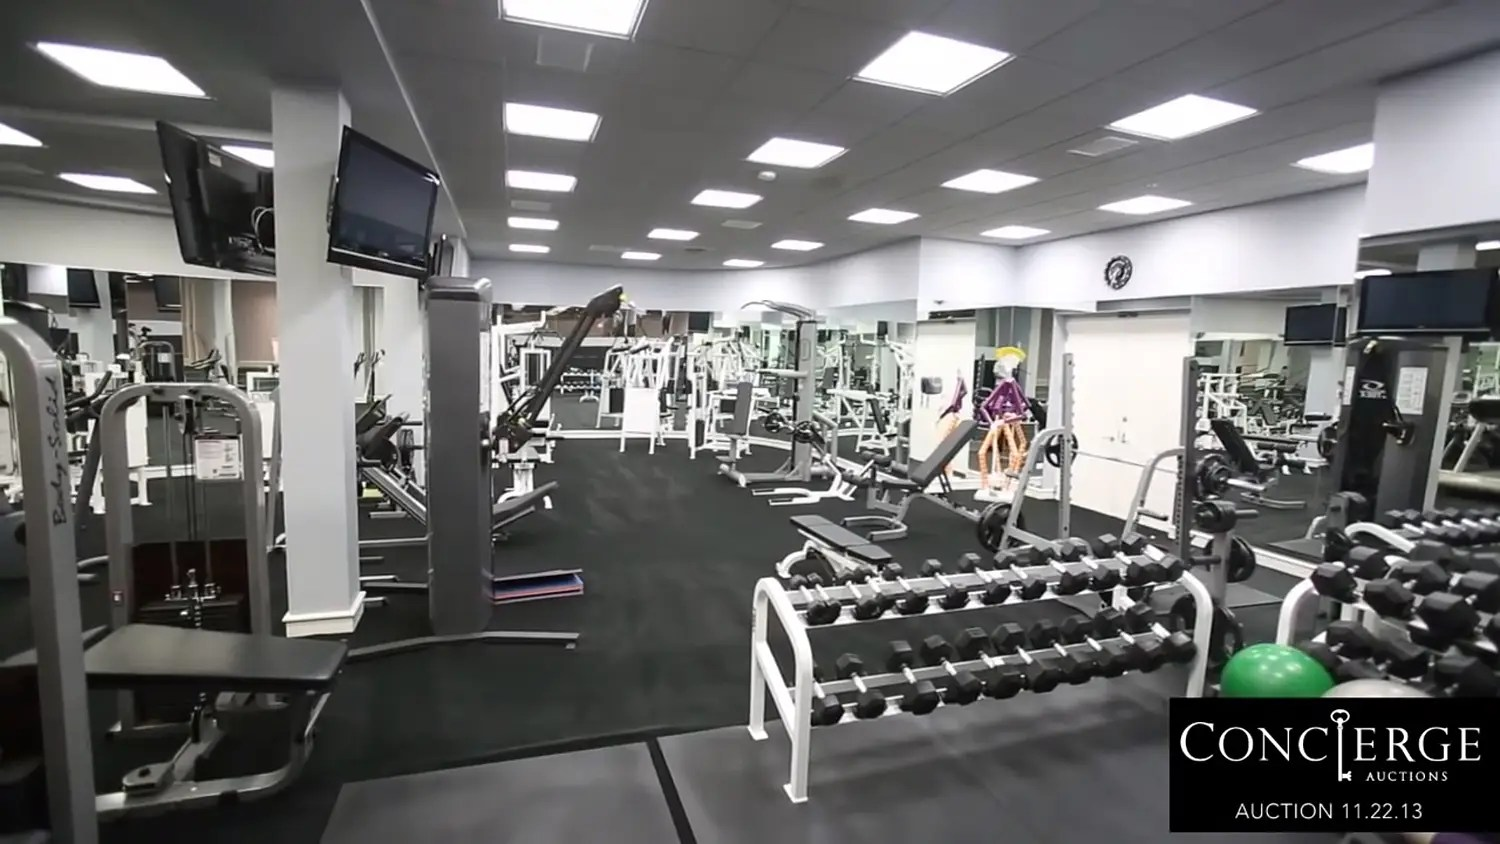 There's a full gym.